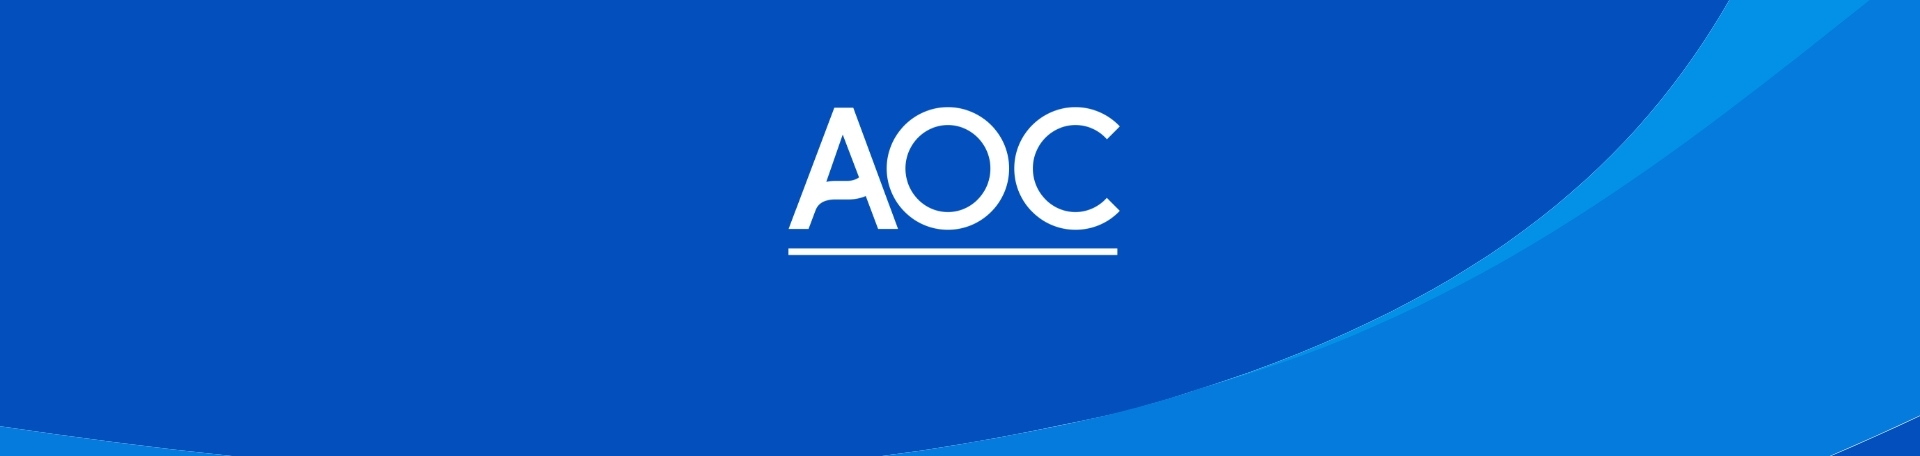 AOC implements order policy changes